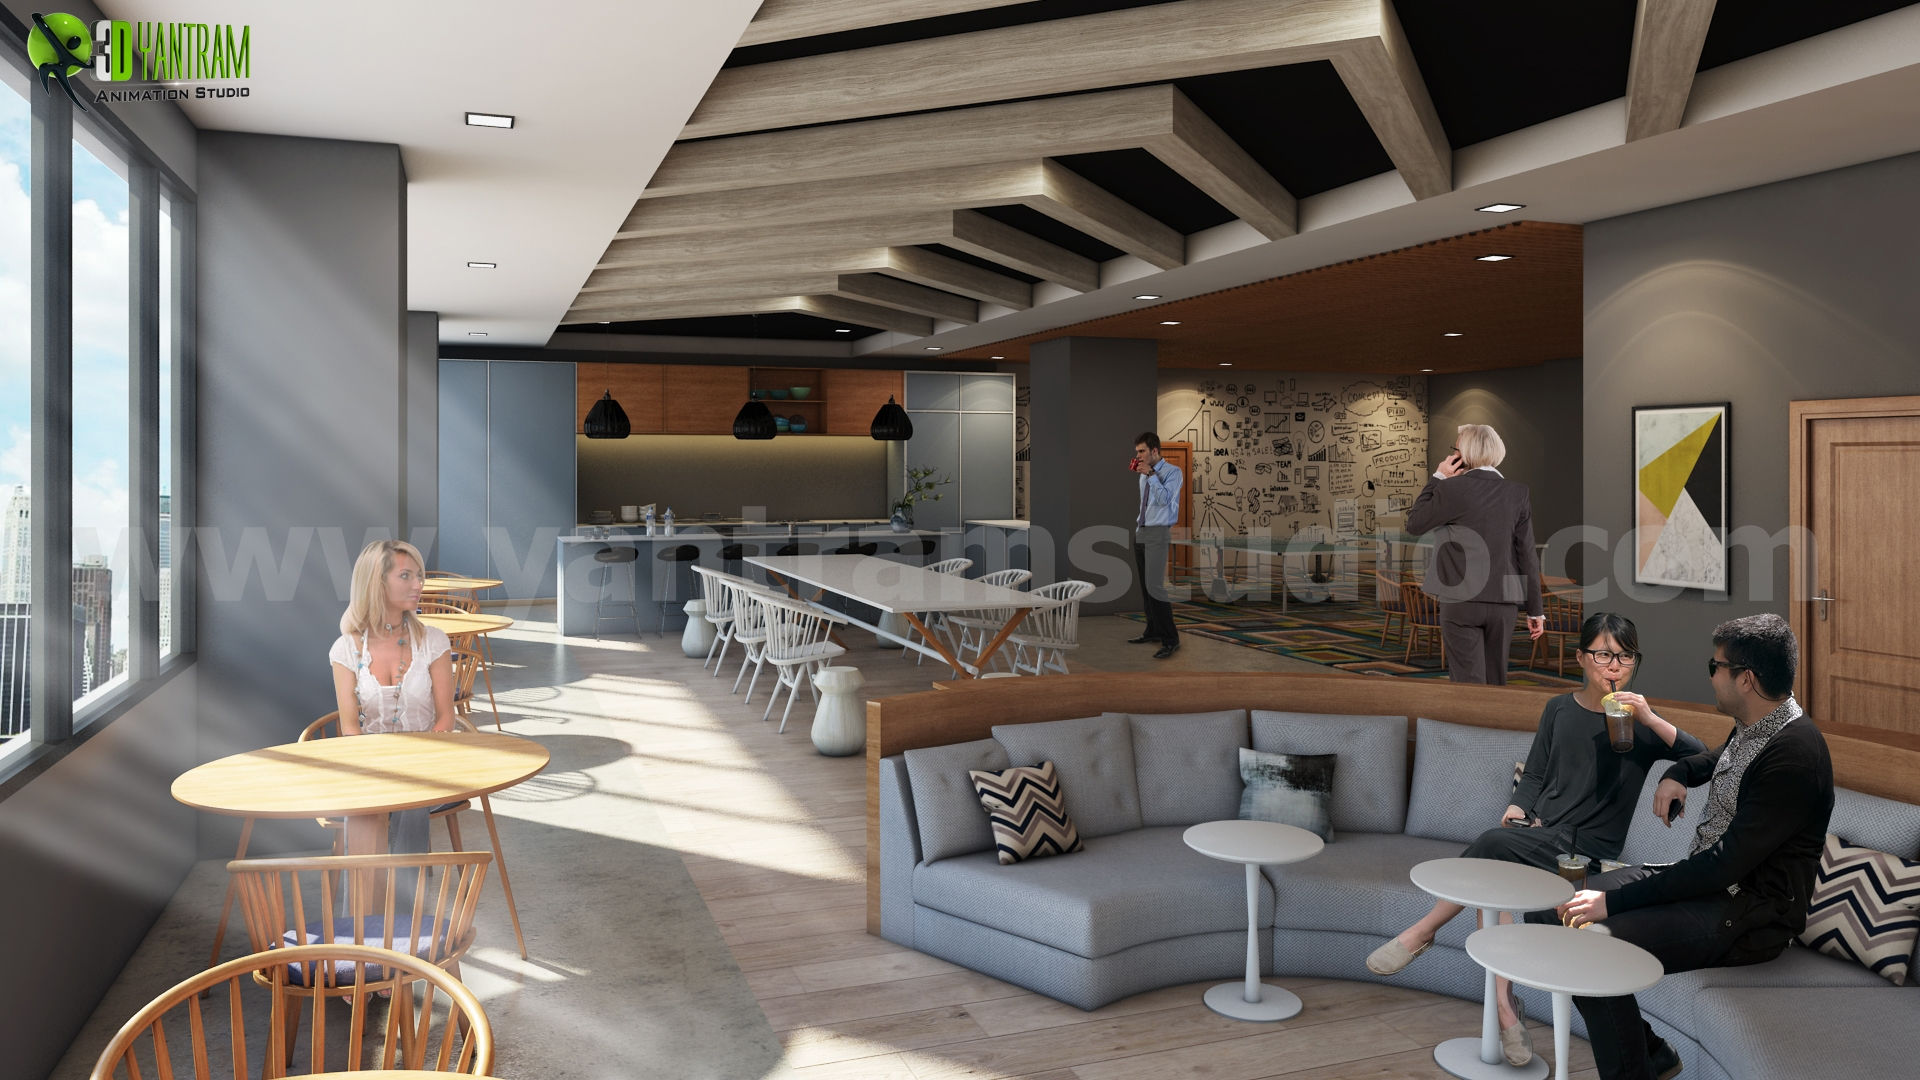 Modern Office Interior Design Ideas For Kitchen, Pantry And Waiting Areas  By Interior Concept Drawings   Cape Town, Australia